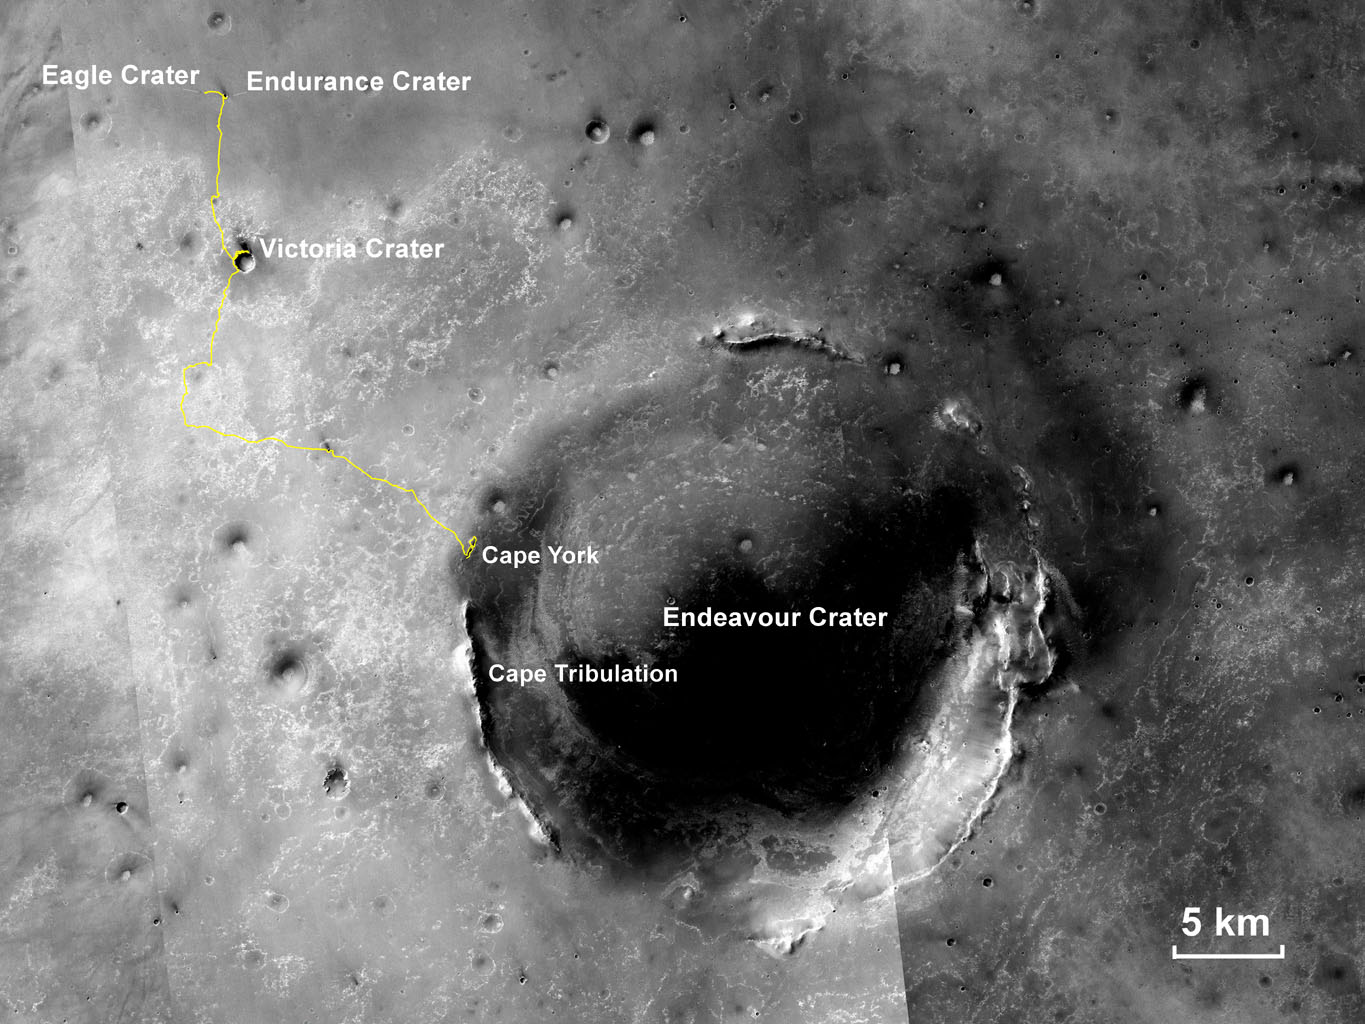 This map shows the route driven by NASA's Opportunity rover from the site of its landing, inside Eagle crater, to its location more than 112 months later, in late May 2013, departing the 'Cape York' section of the rim of Endeavour crater.